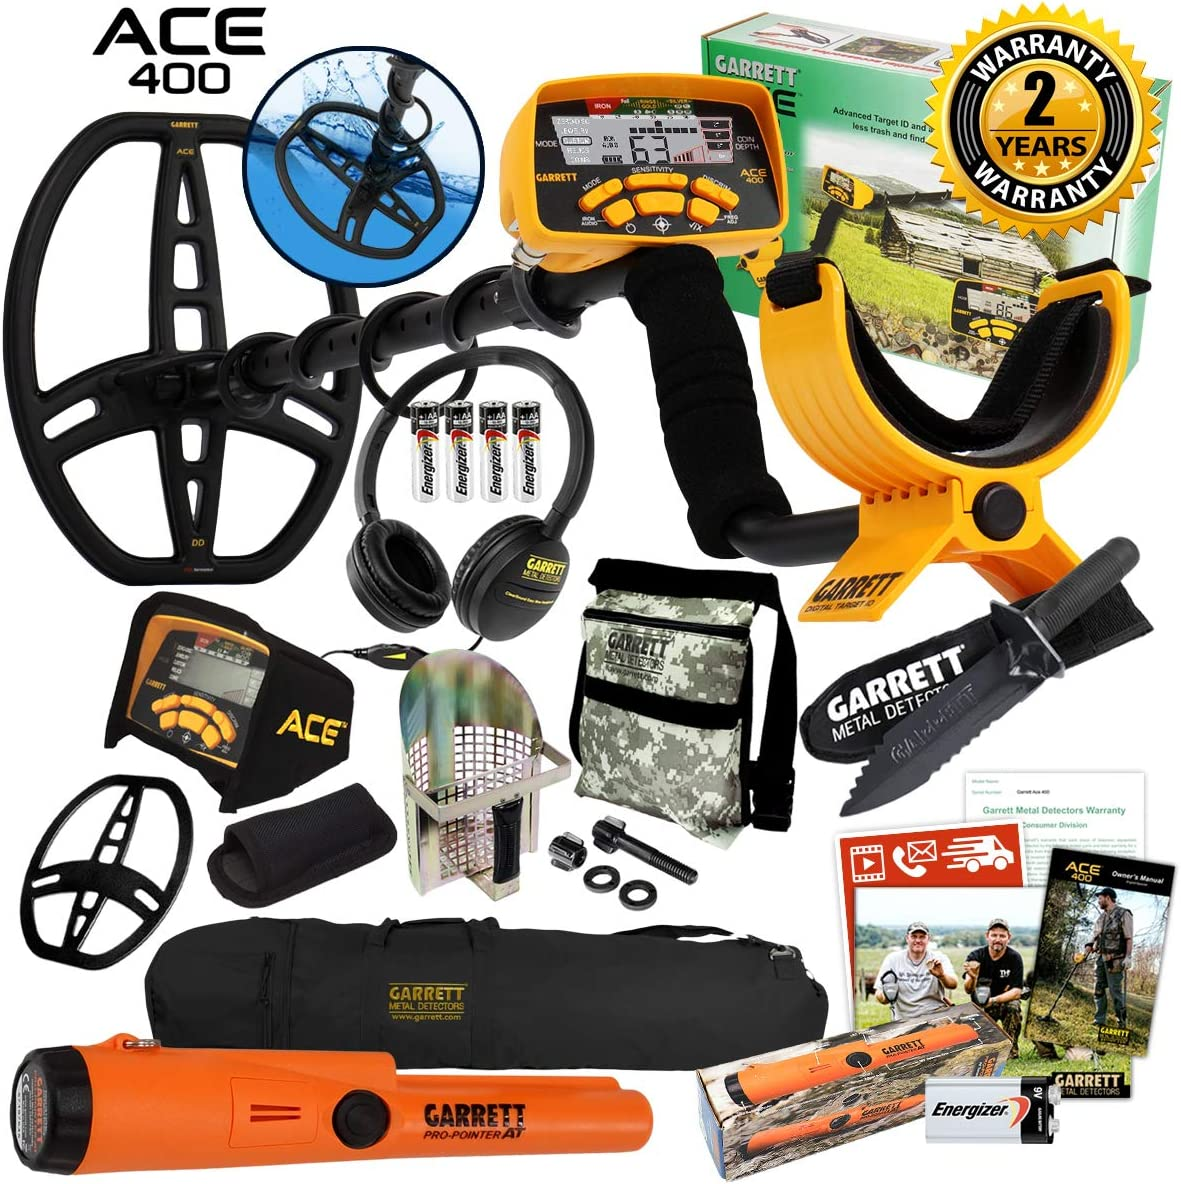 Garrett ACE 400 Metal Detector with DD Waterproof Coil, Propointer AT Pinpointer, Metal Scoop, Camo Pouch, Edge Digger and 50 Travel Bag